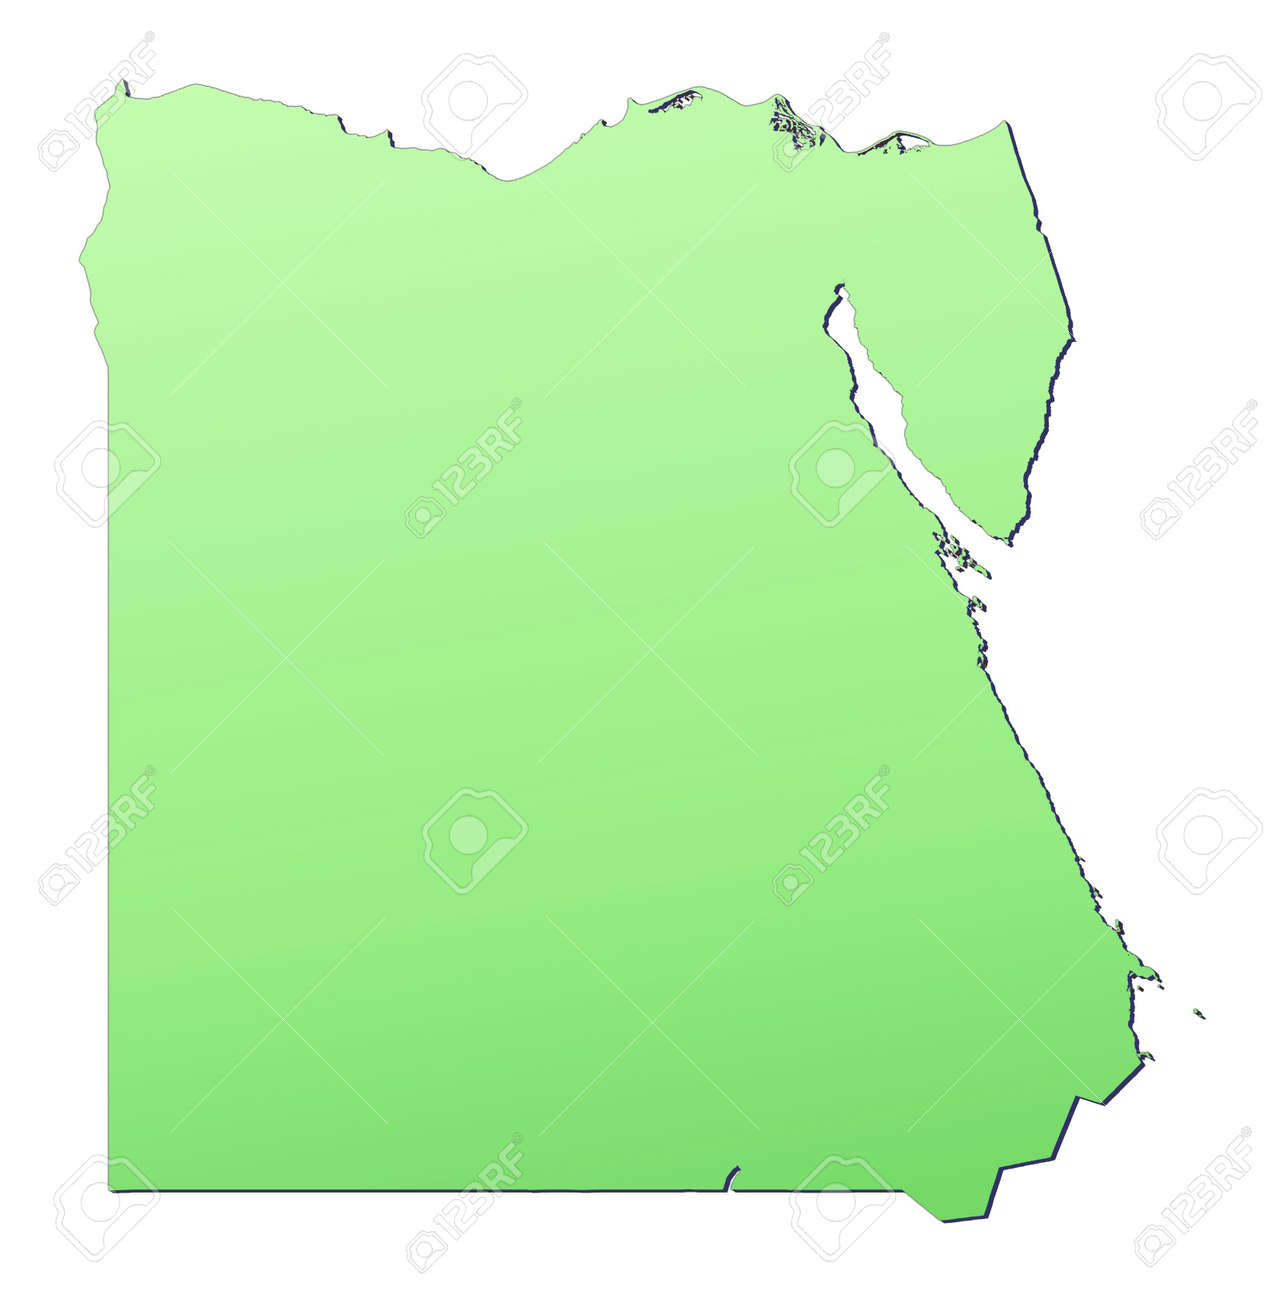 Egypt Map Filled With Light Green Gradient High Resolution - Map of egypt high resolution